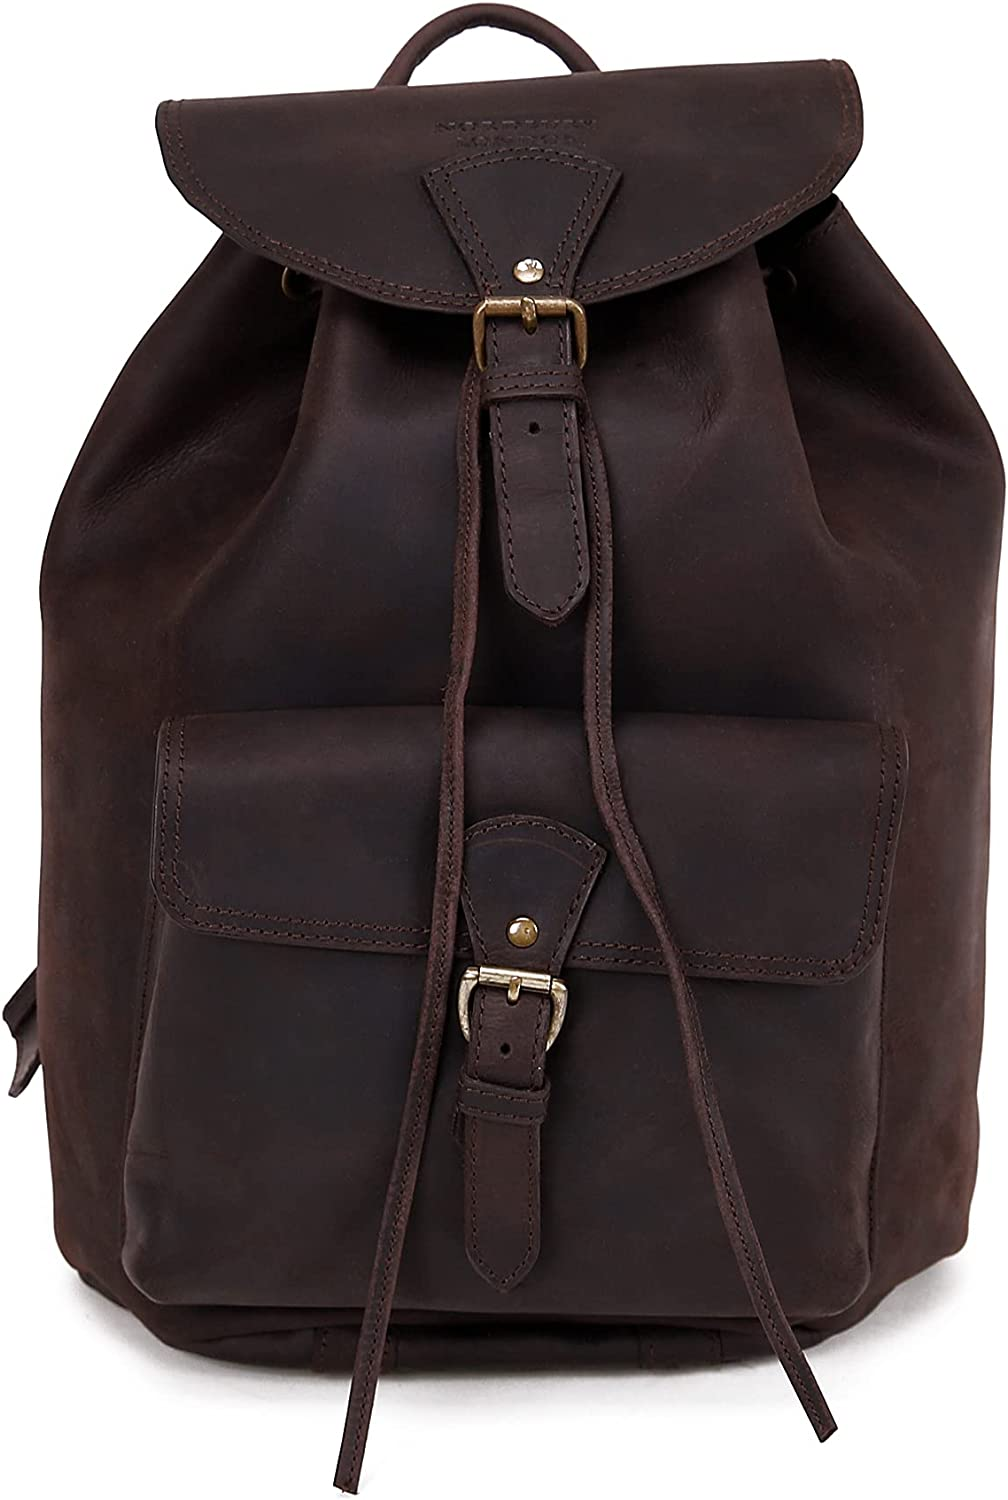 Ranking TOP8 NORDBURY Max 71% OFF Hand-Crafted Genuine Leather Bag Fash Backpack Rucksack